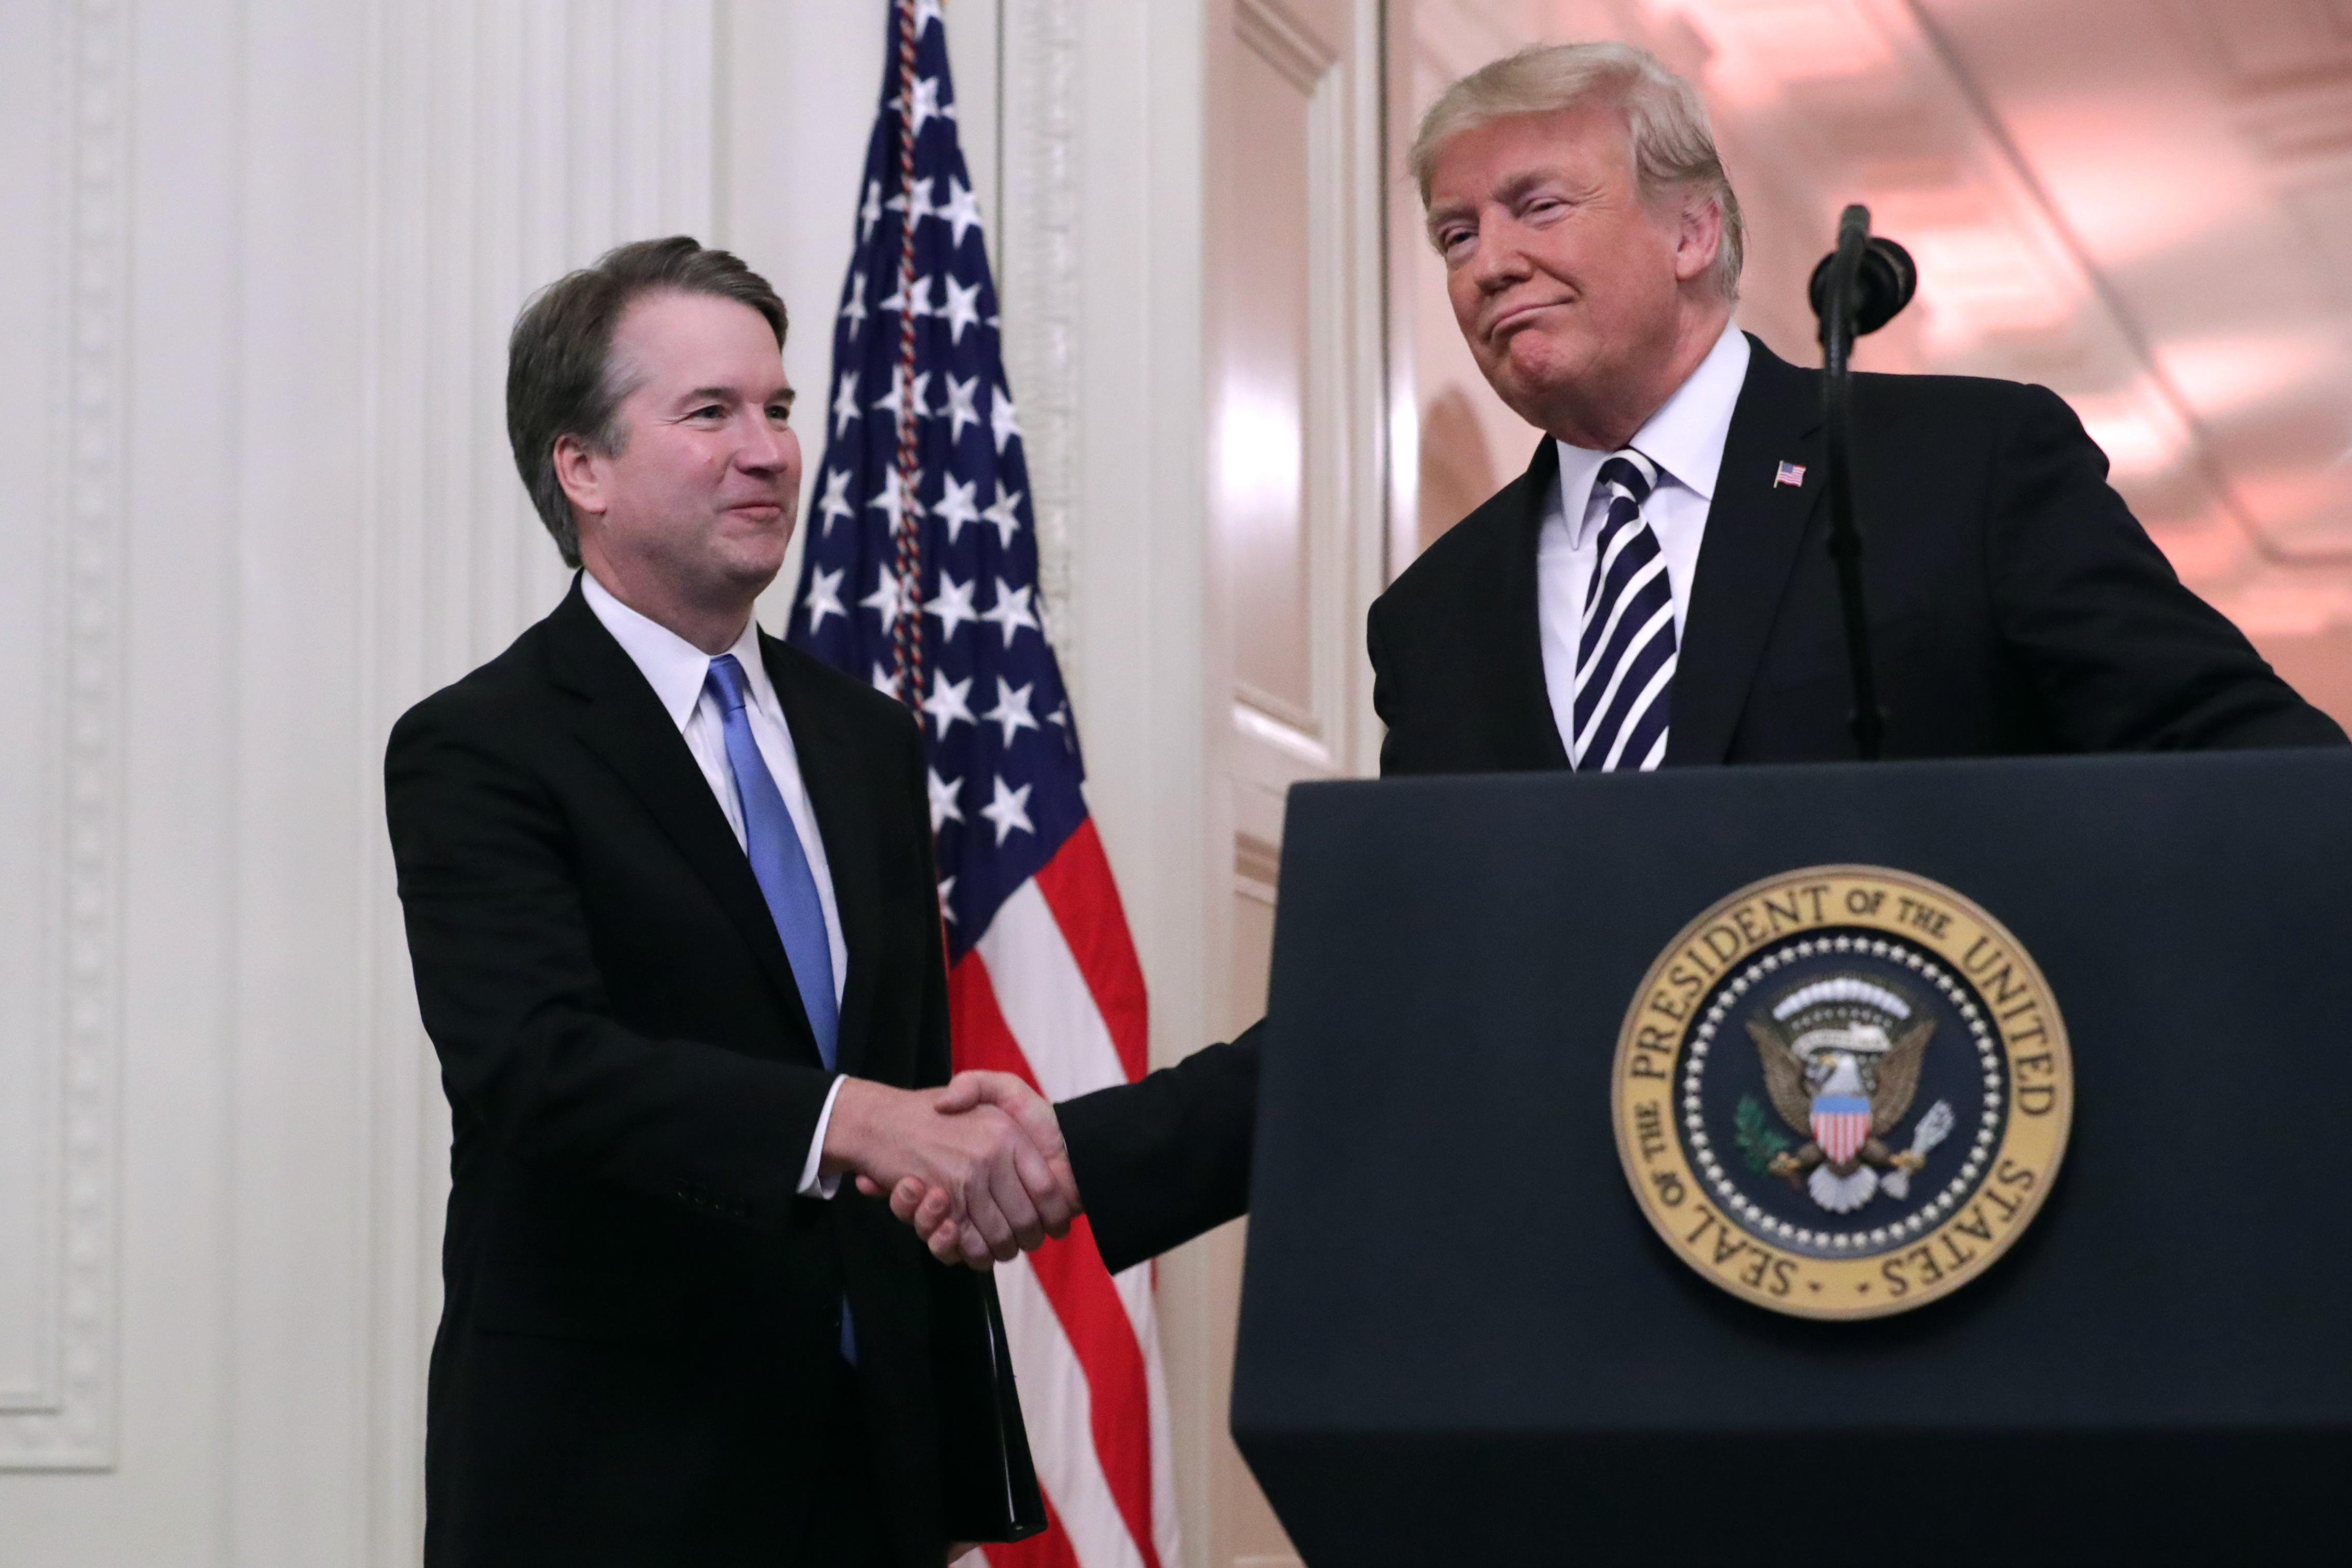 Donald Trump finally just said it: he doesn't care if Kavanaugh's accuser is telling the truth